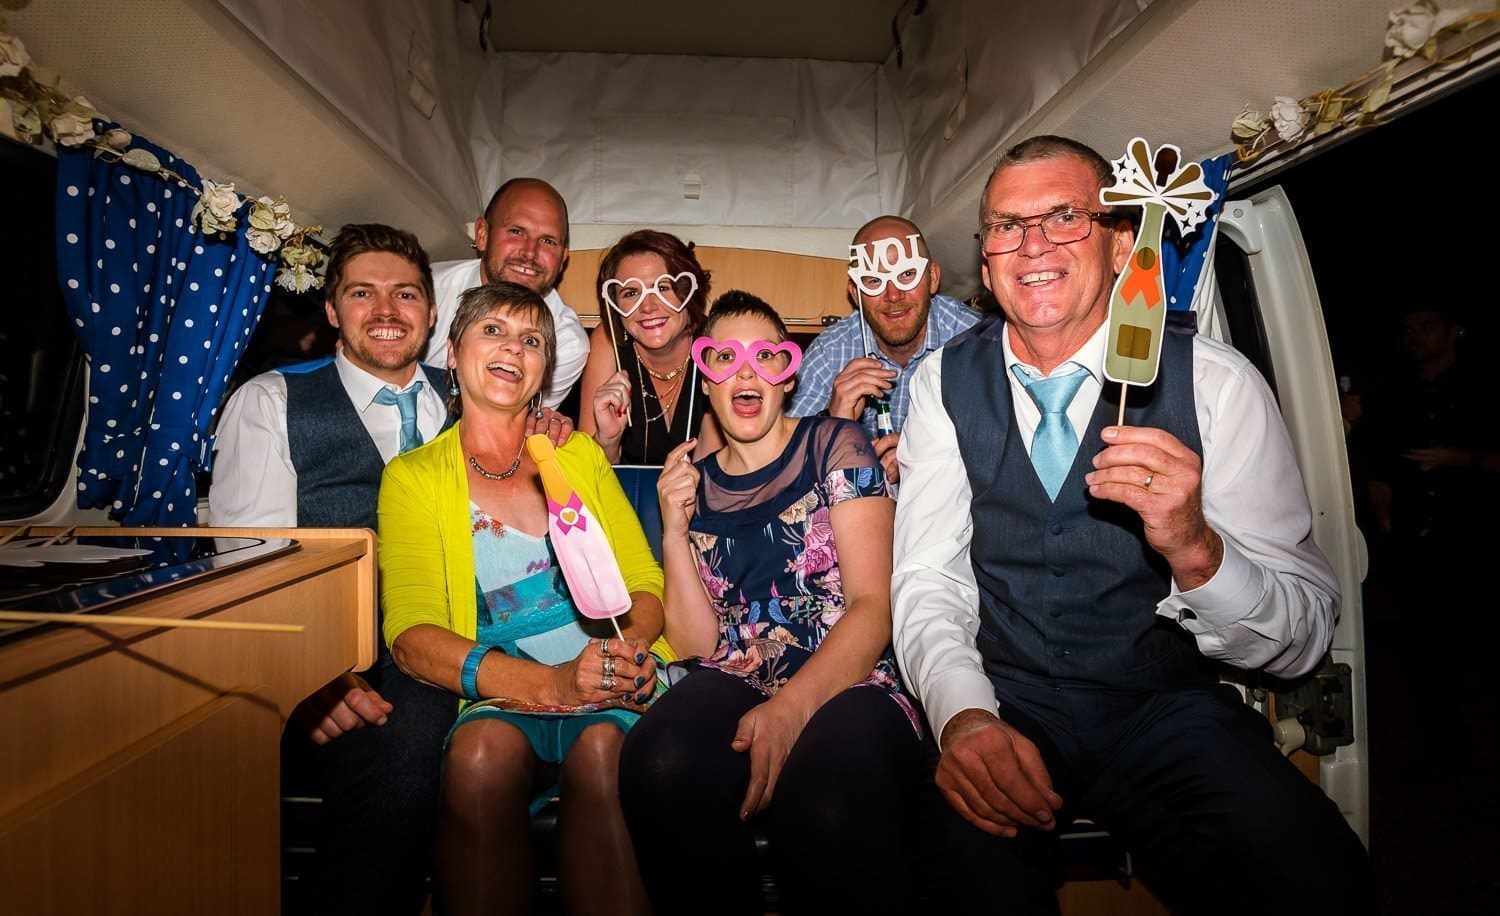 Norfolk retro campers photo booth at Southwood Hall wedding